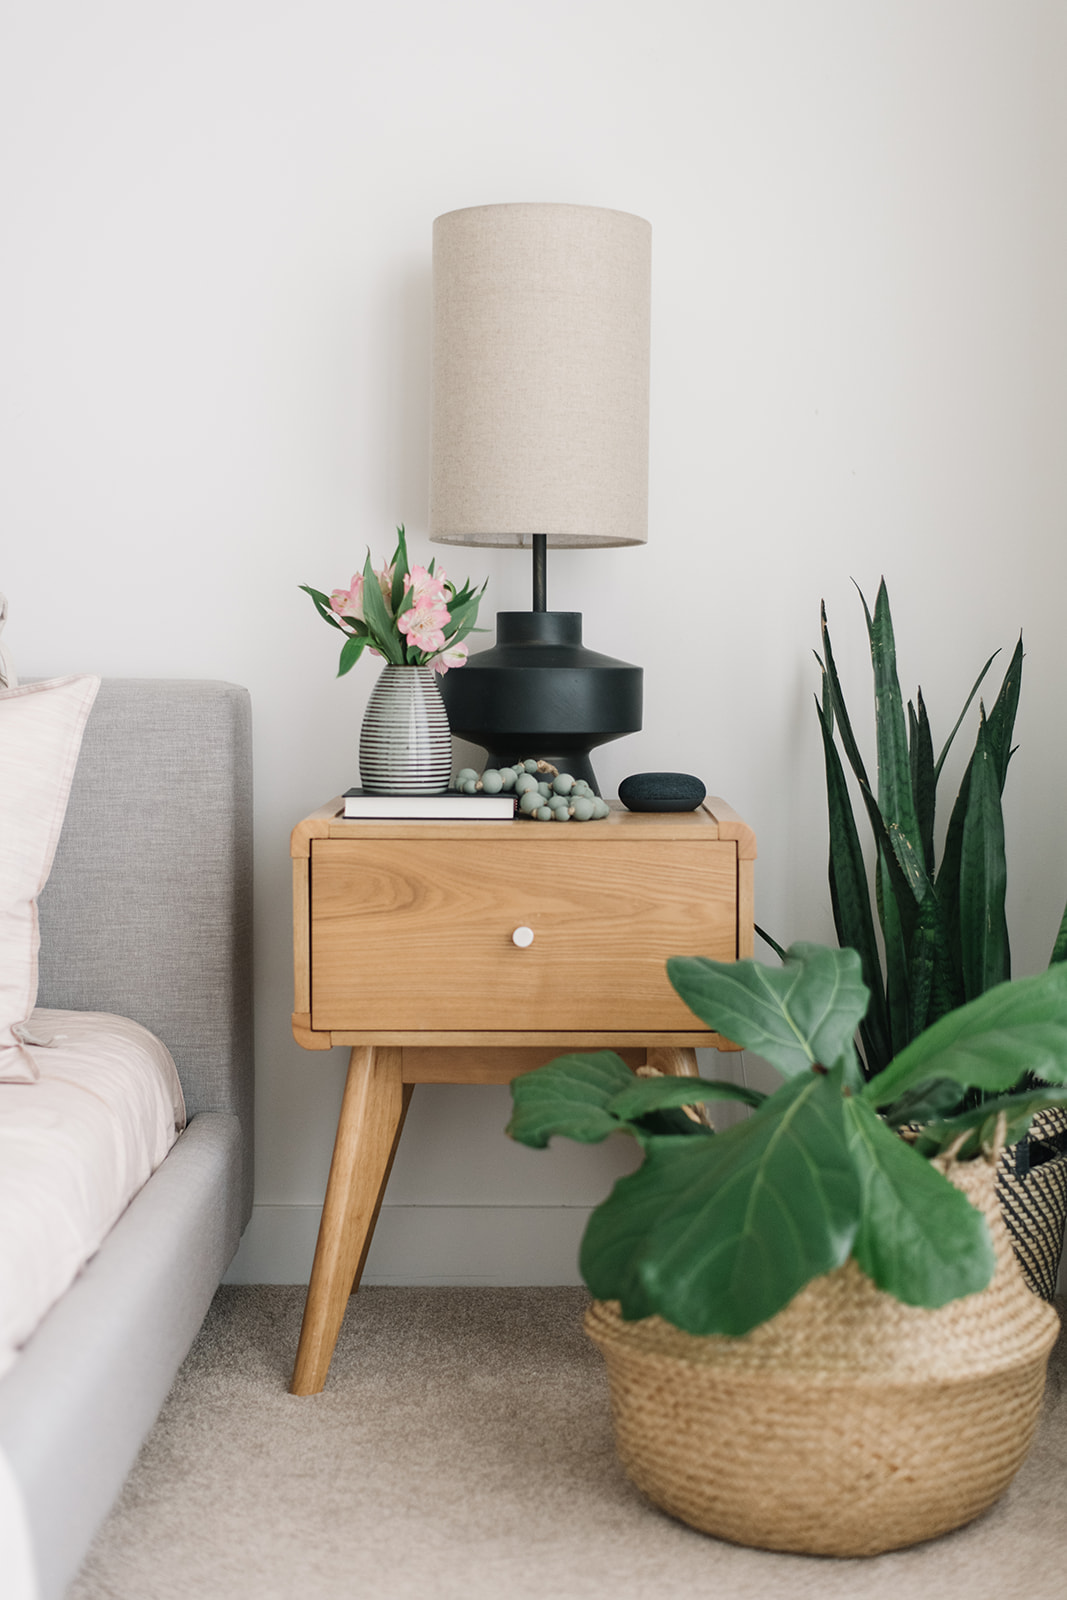 mid century modern bedroom, bedside table styling